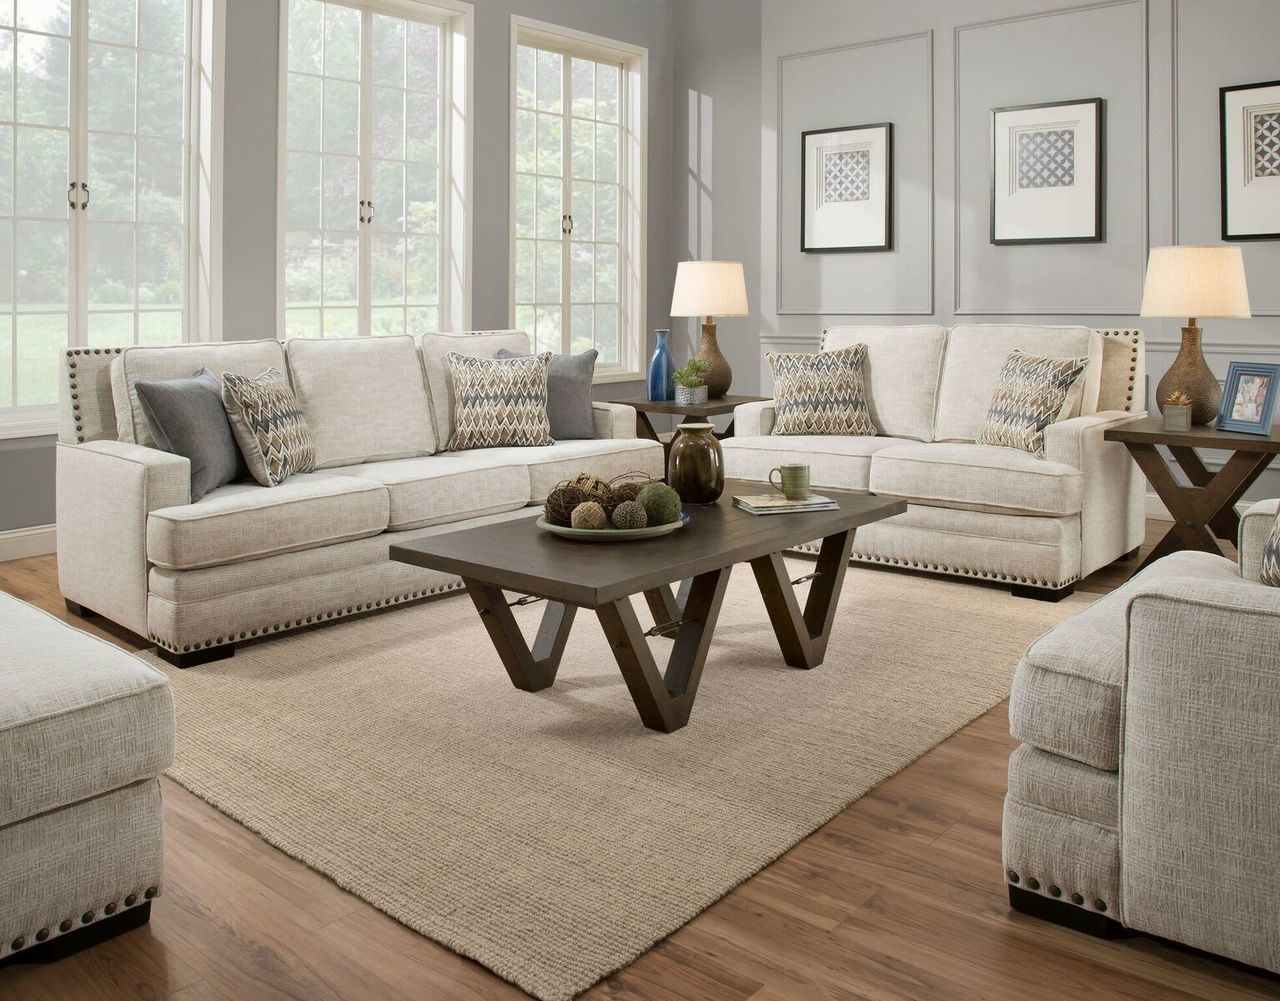 Discount Living Room Furniture Sets Modern Interior Pictures Albany Symbio Cream Sofa Loveseat Set 488 Savvy